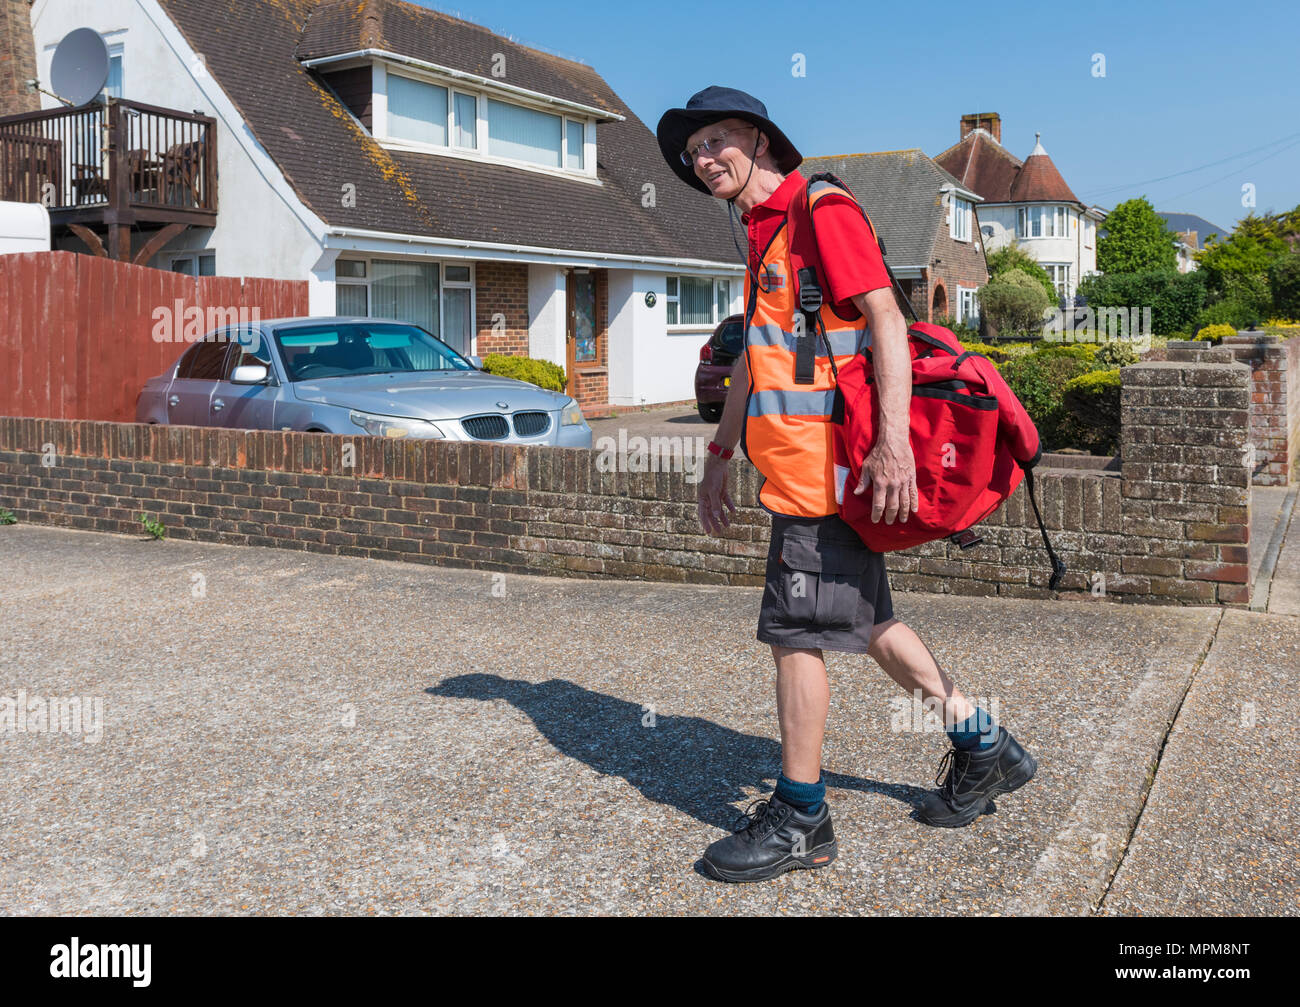 British postman wearing shorts walking in a residential area carrying a red satchel of letters, for morning deliveries in West Sussex, England, UK. - Stock Image